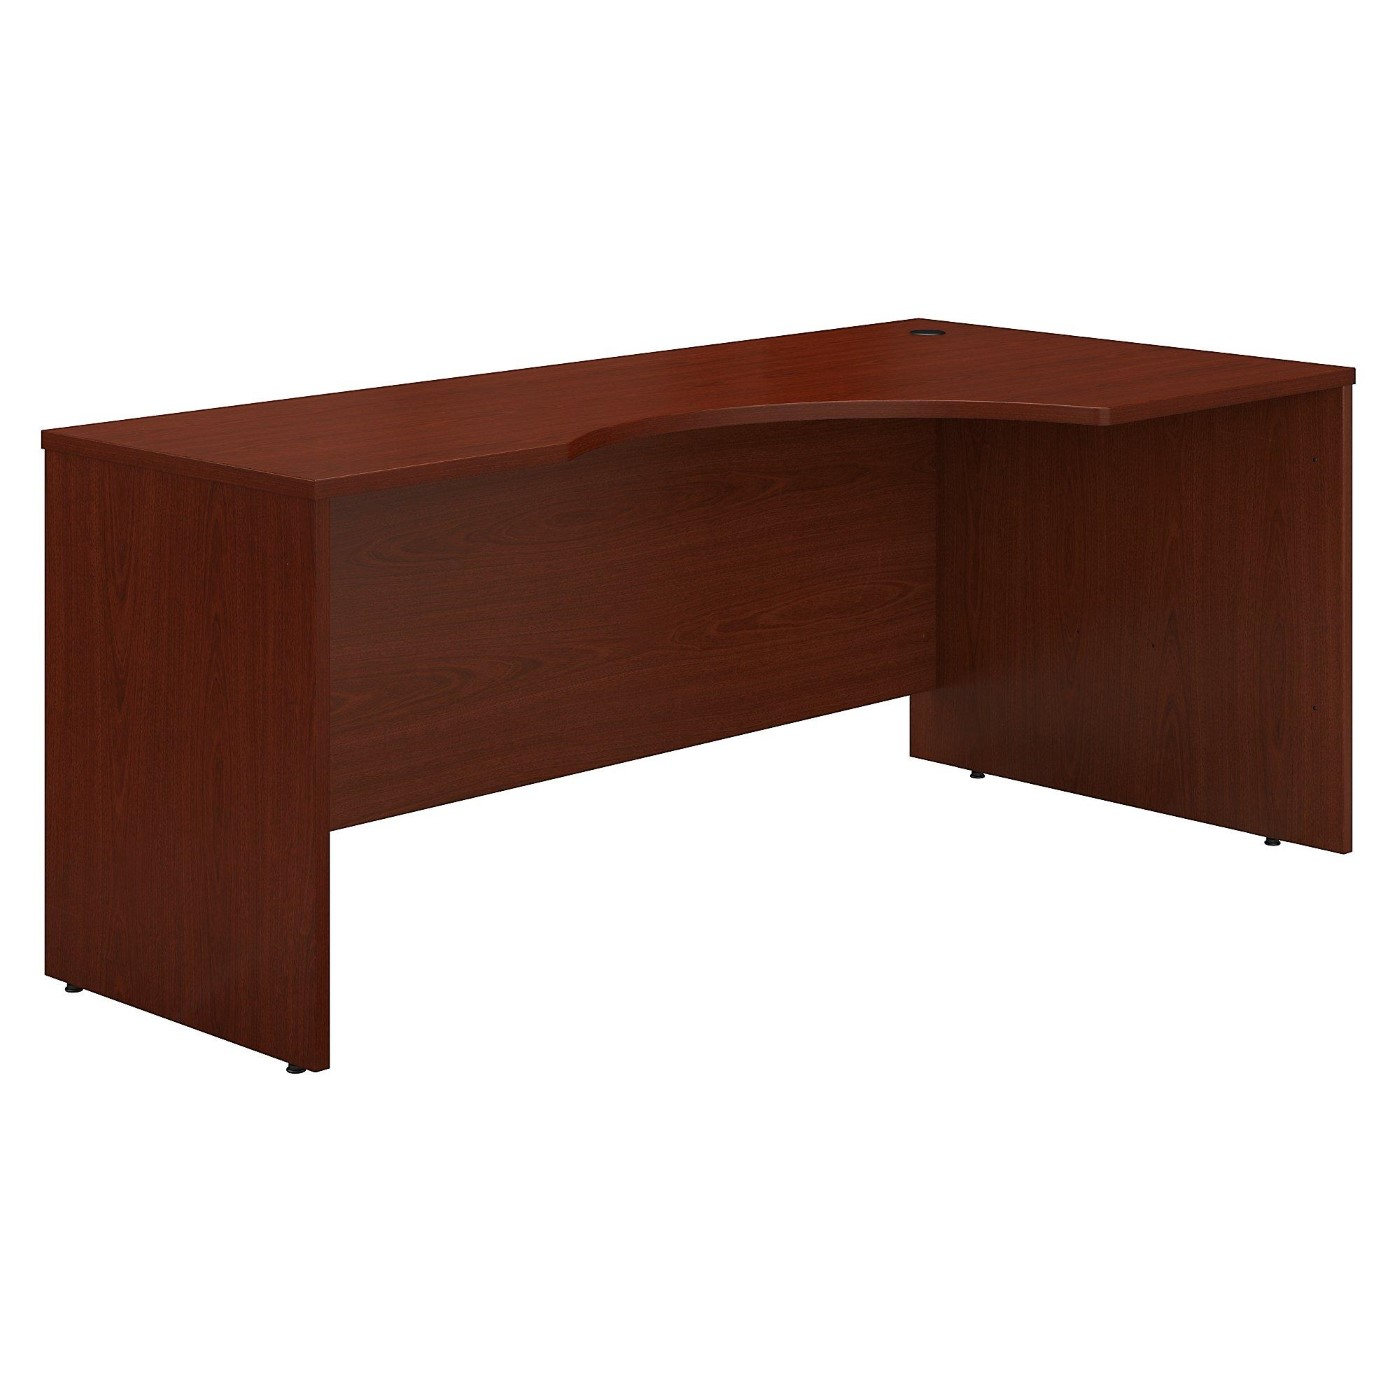 <font color=#c60><b>BUSH BUSINESS FURNITURE SERIES C 72W LEFT HANDED CORNER DESK. FREE SHIPPING</font></b>